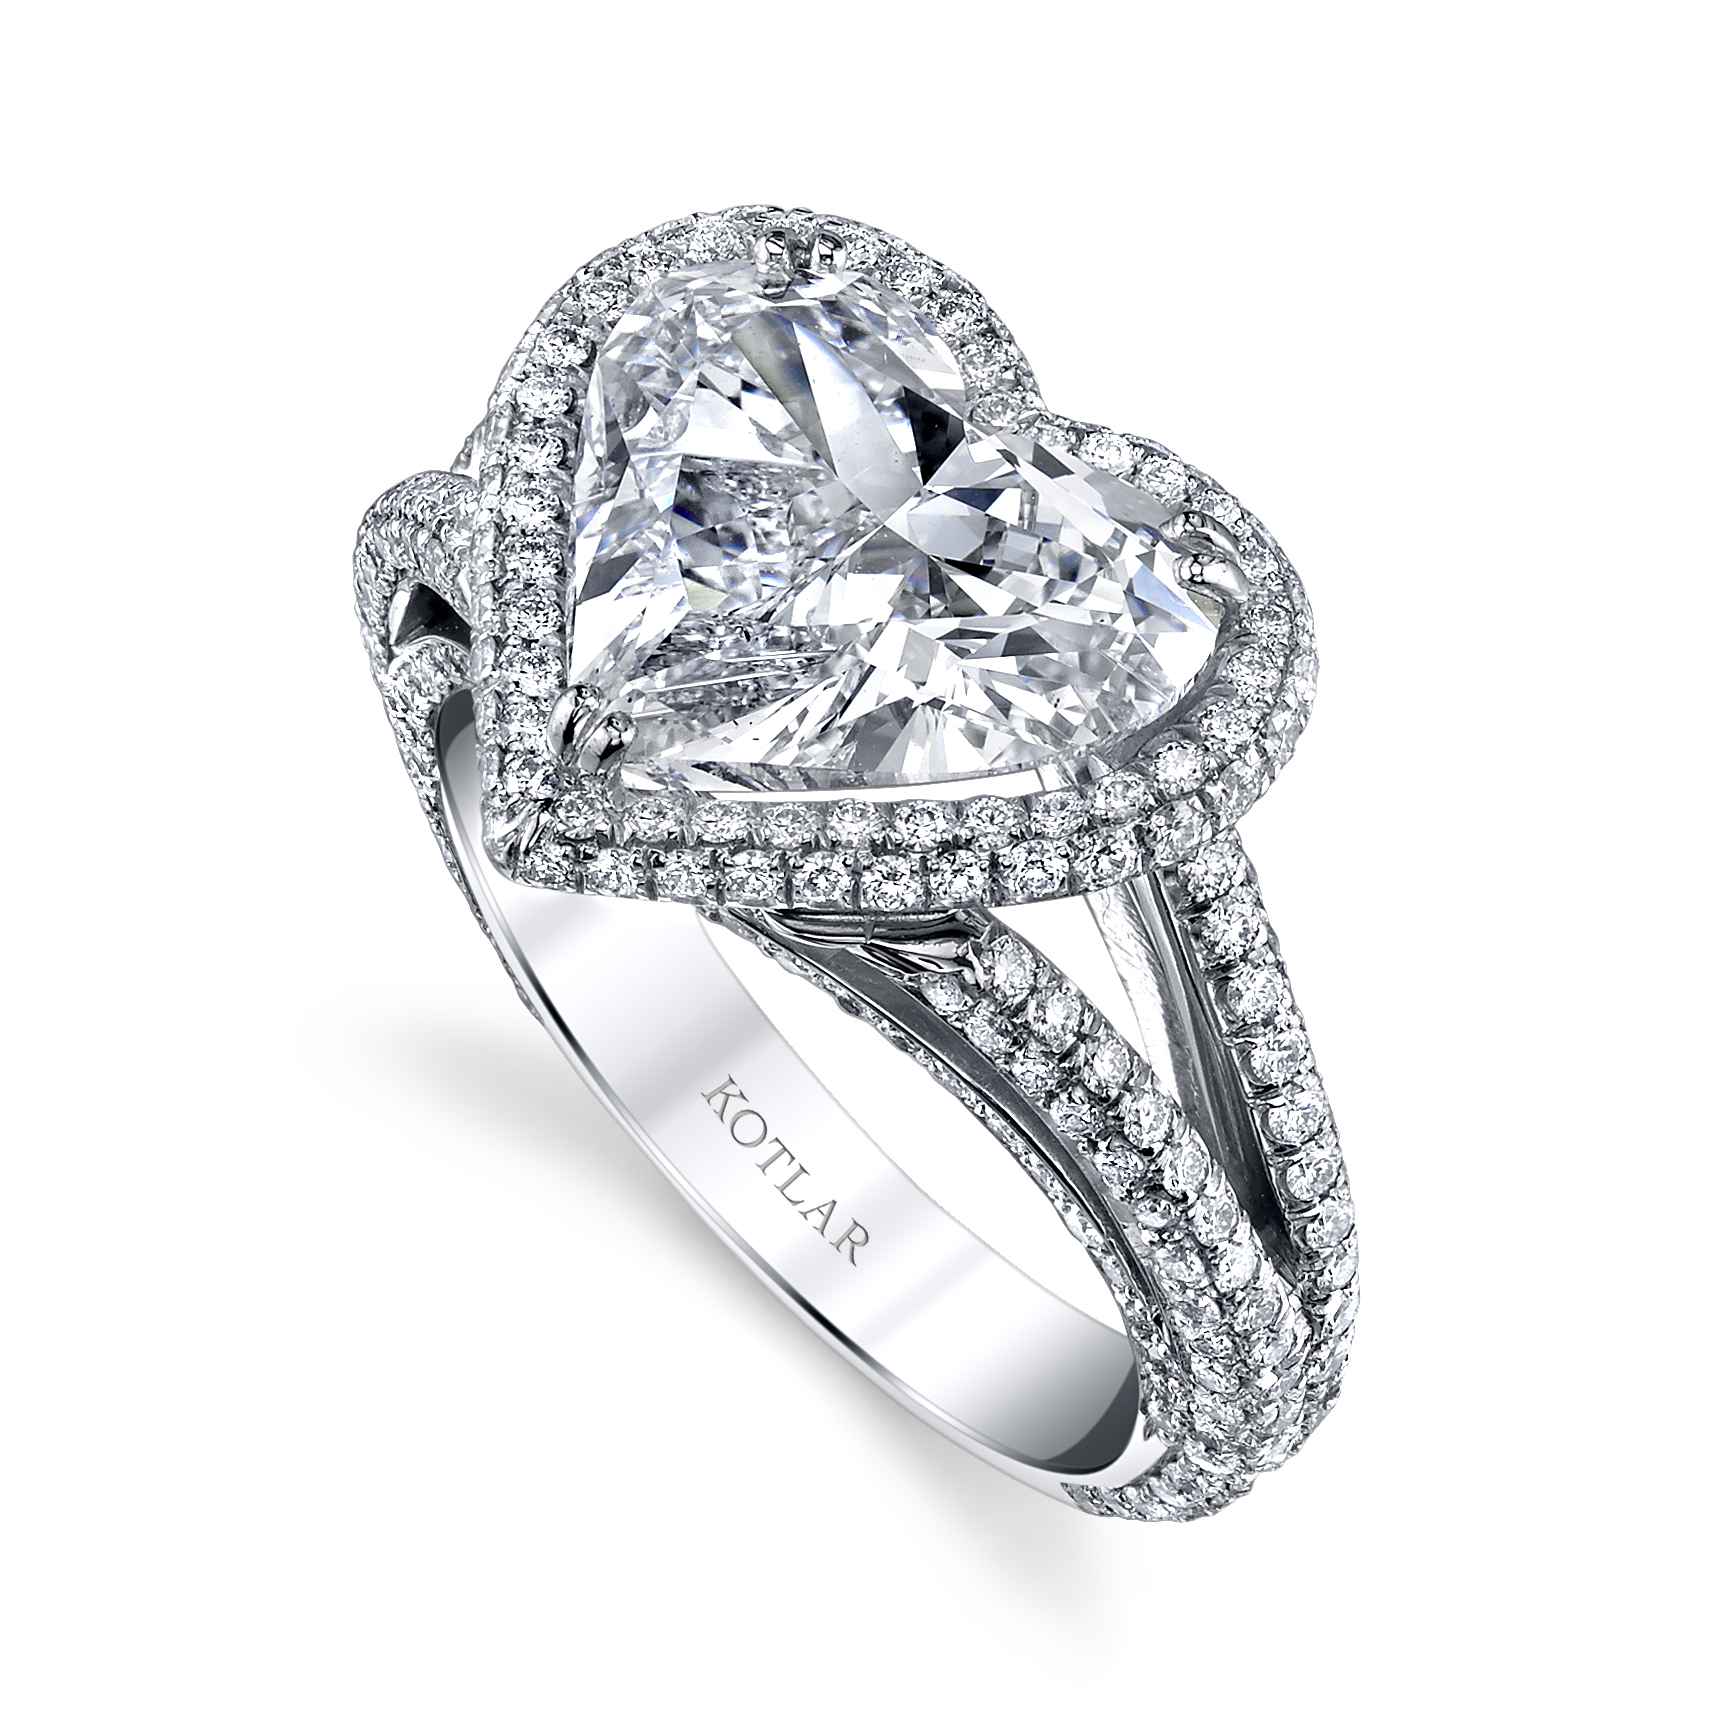 The shape of love. Shreve's Harry Kotlar sparkler boasts a 4.01 carat heart-shaped diamond. Why haven't you proposed to her yet?; $172,355, shreve.com.